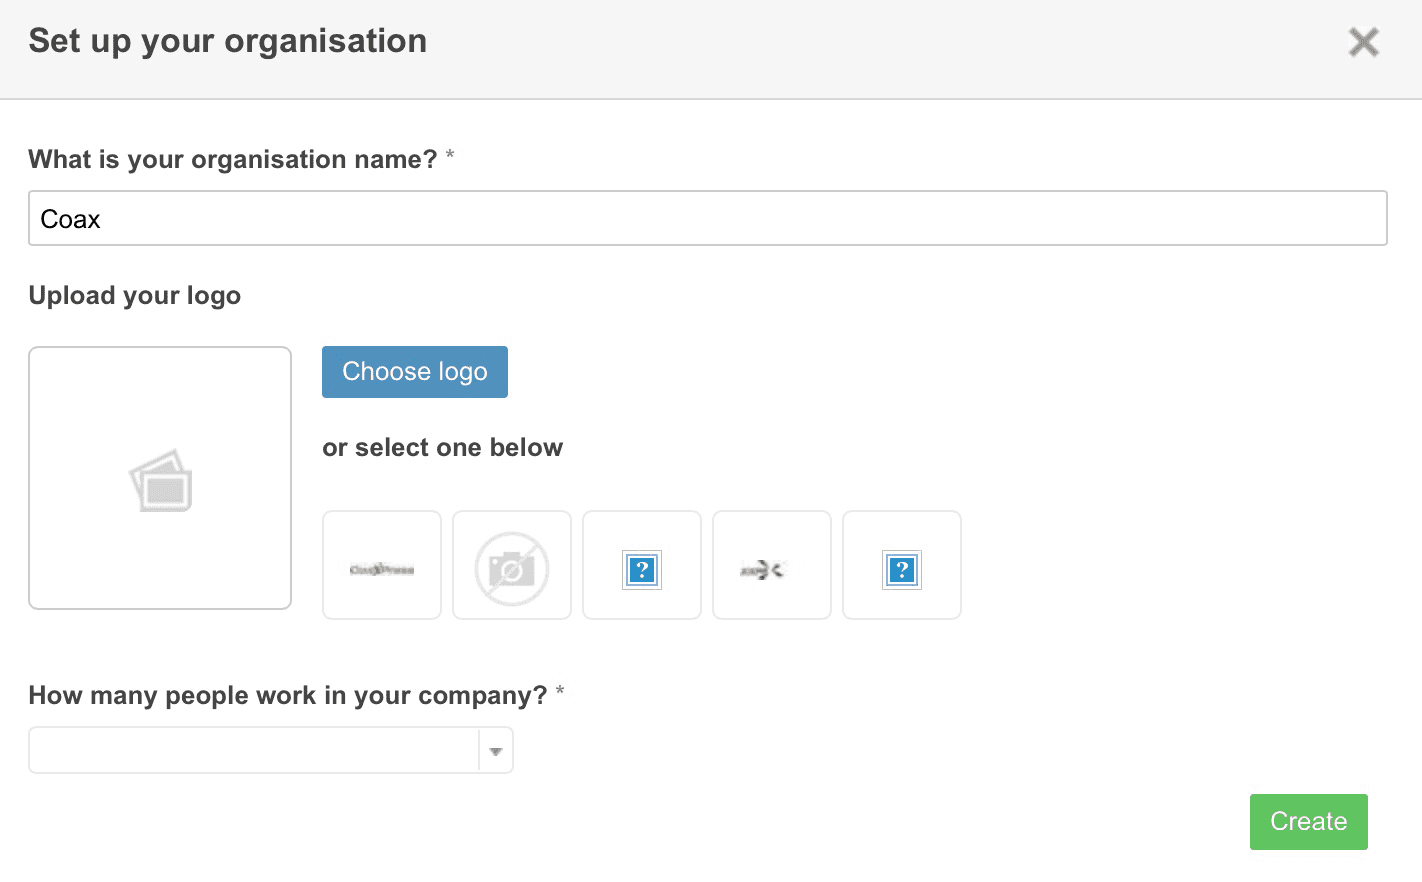 Image showing the required fields to set up a new organization